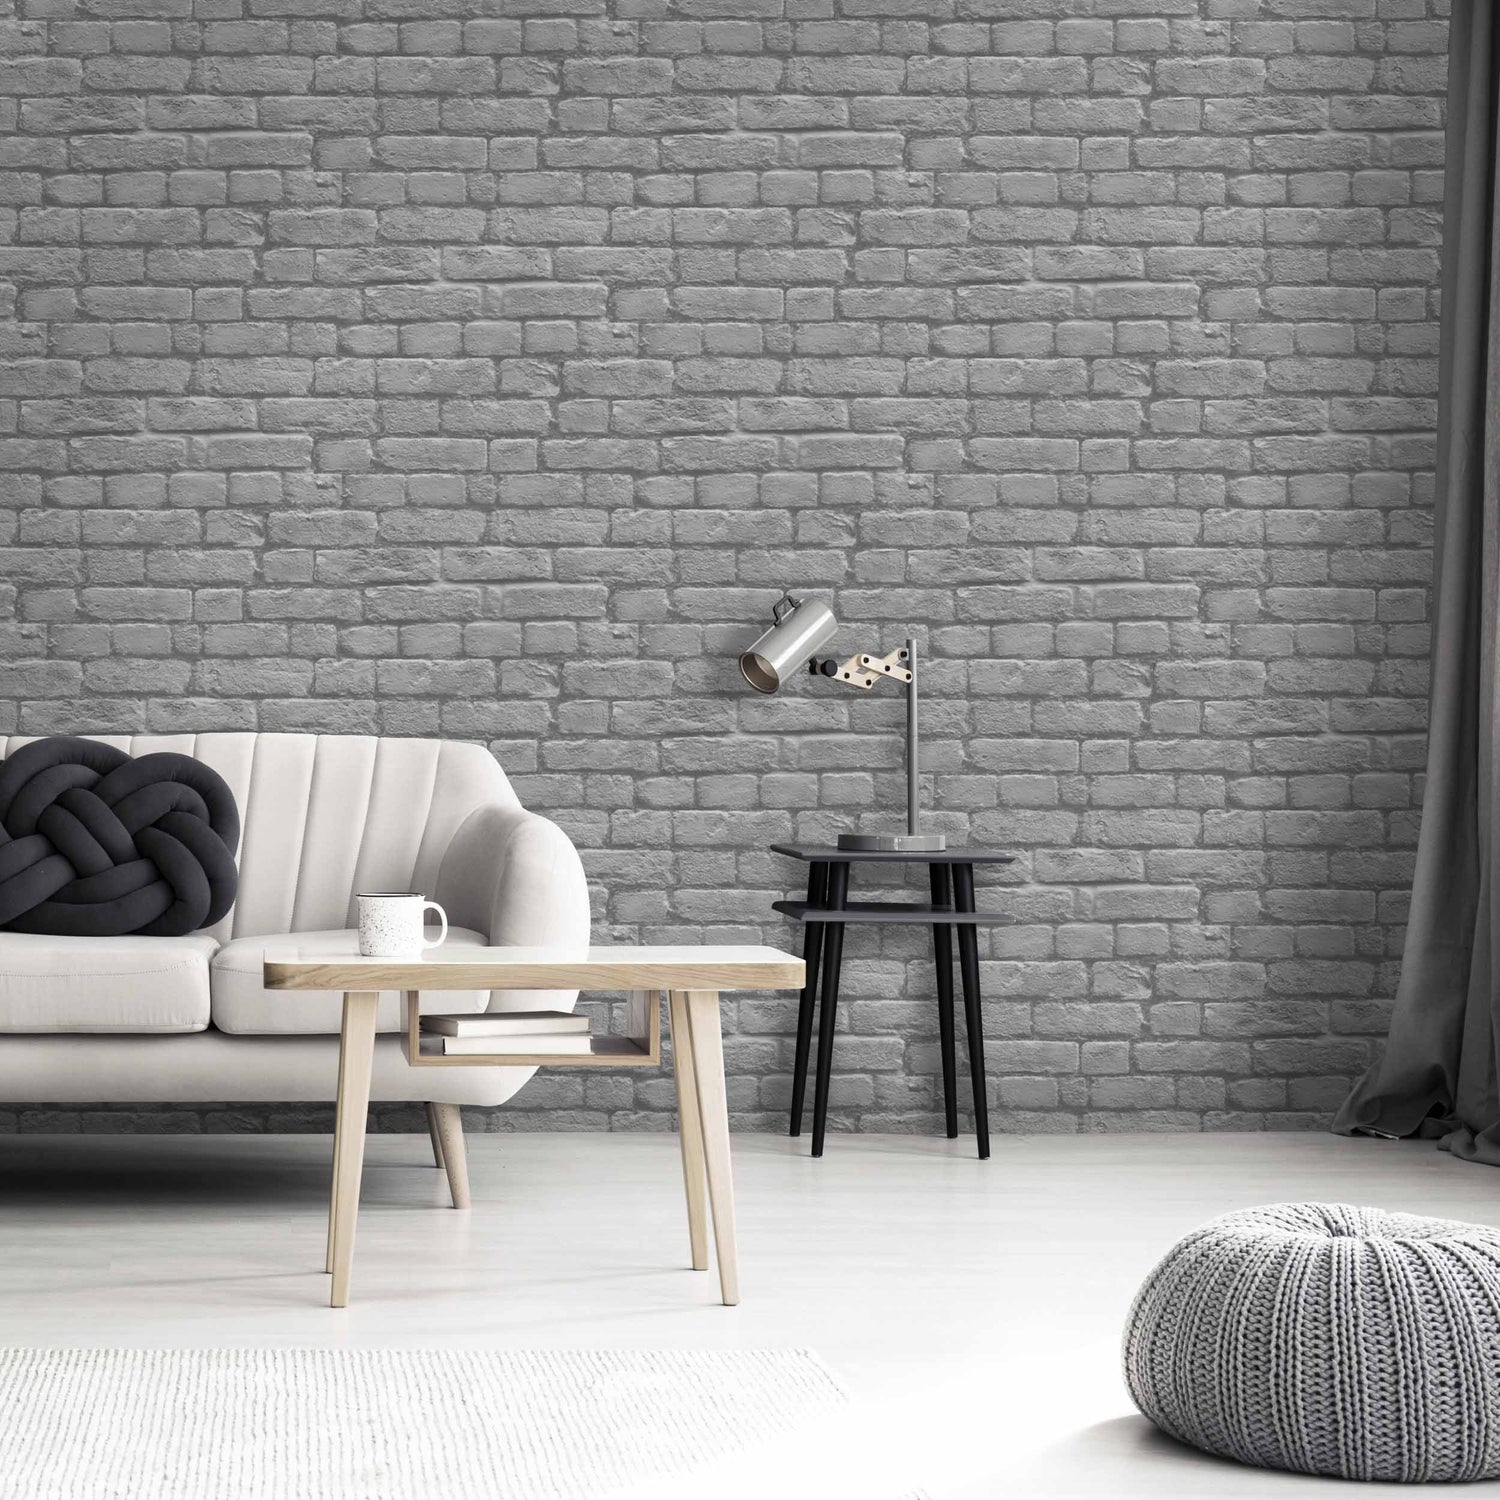 Charcoal Brick by Argent & Ink